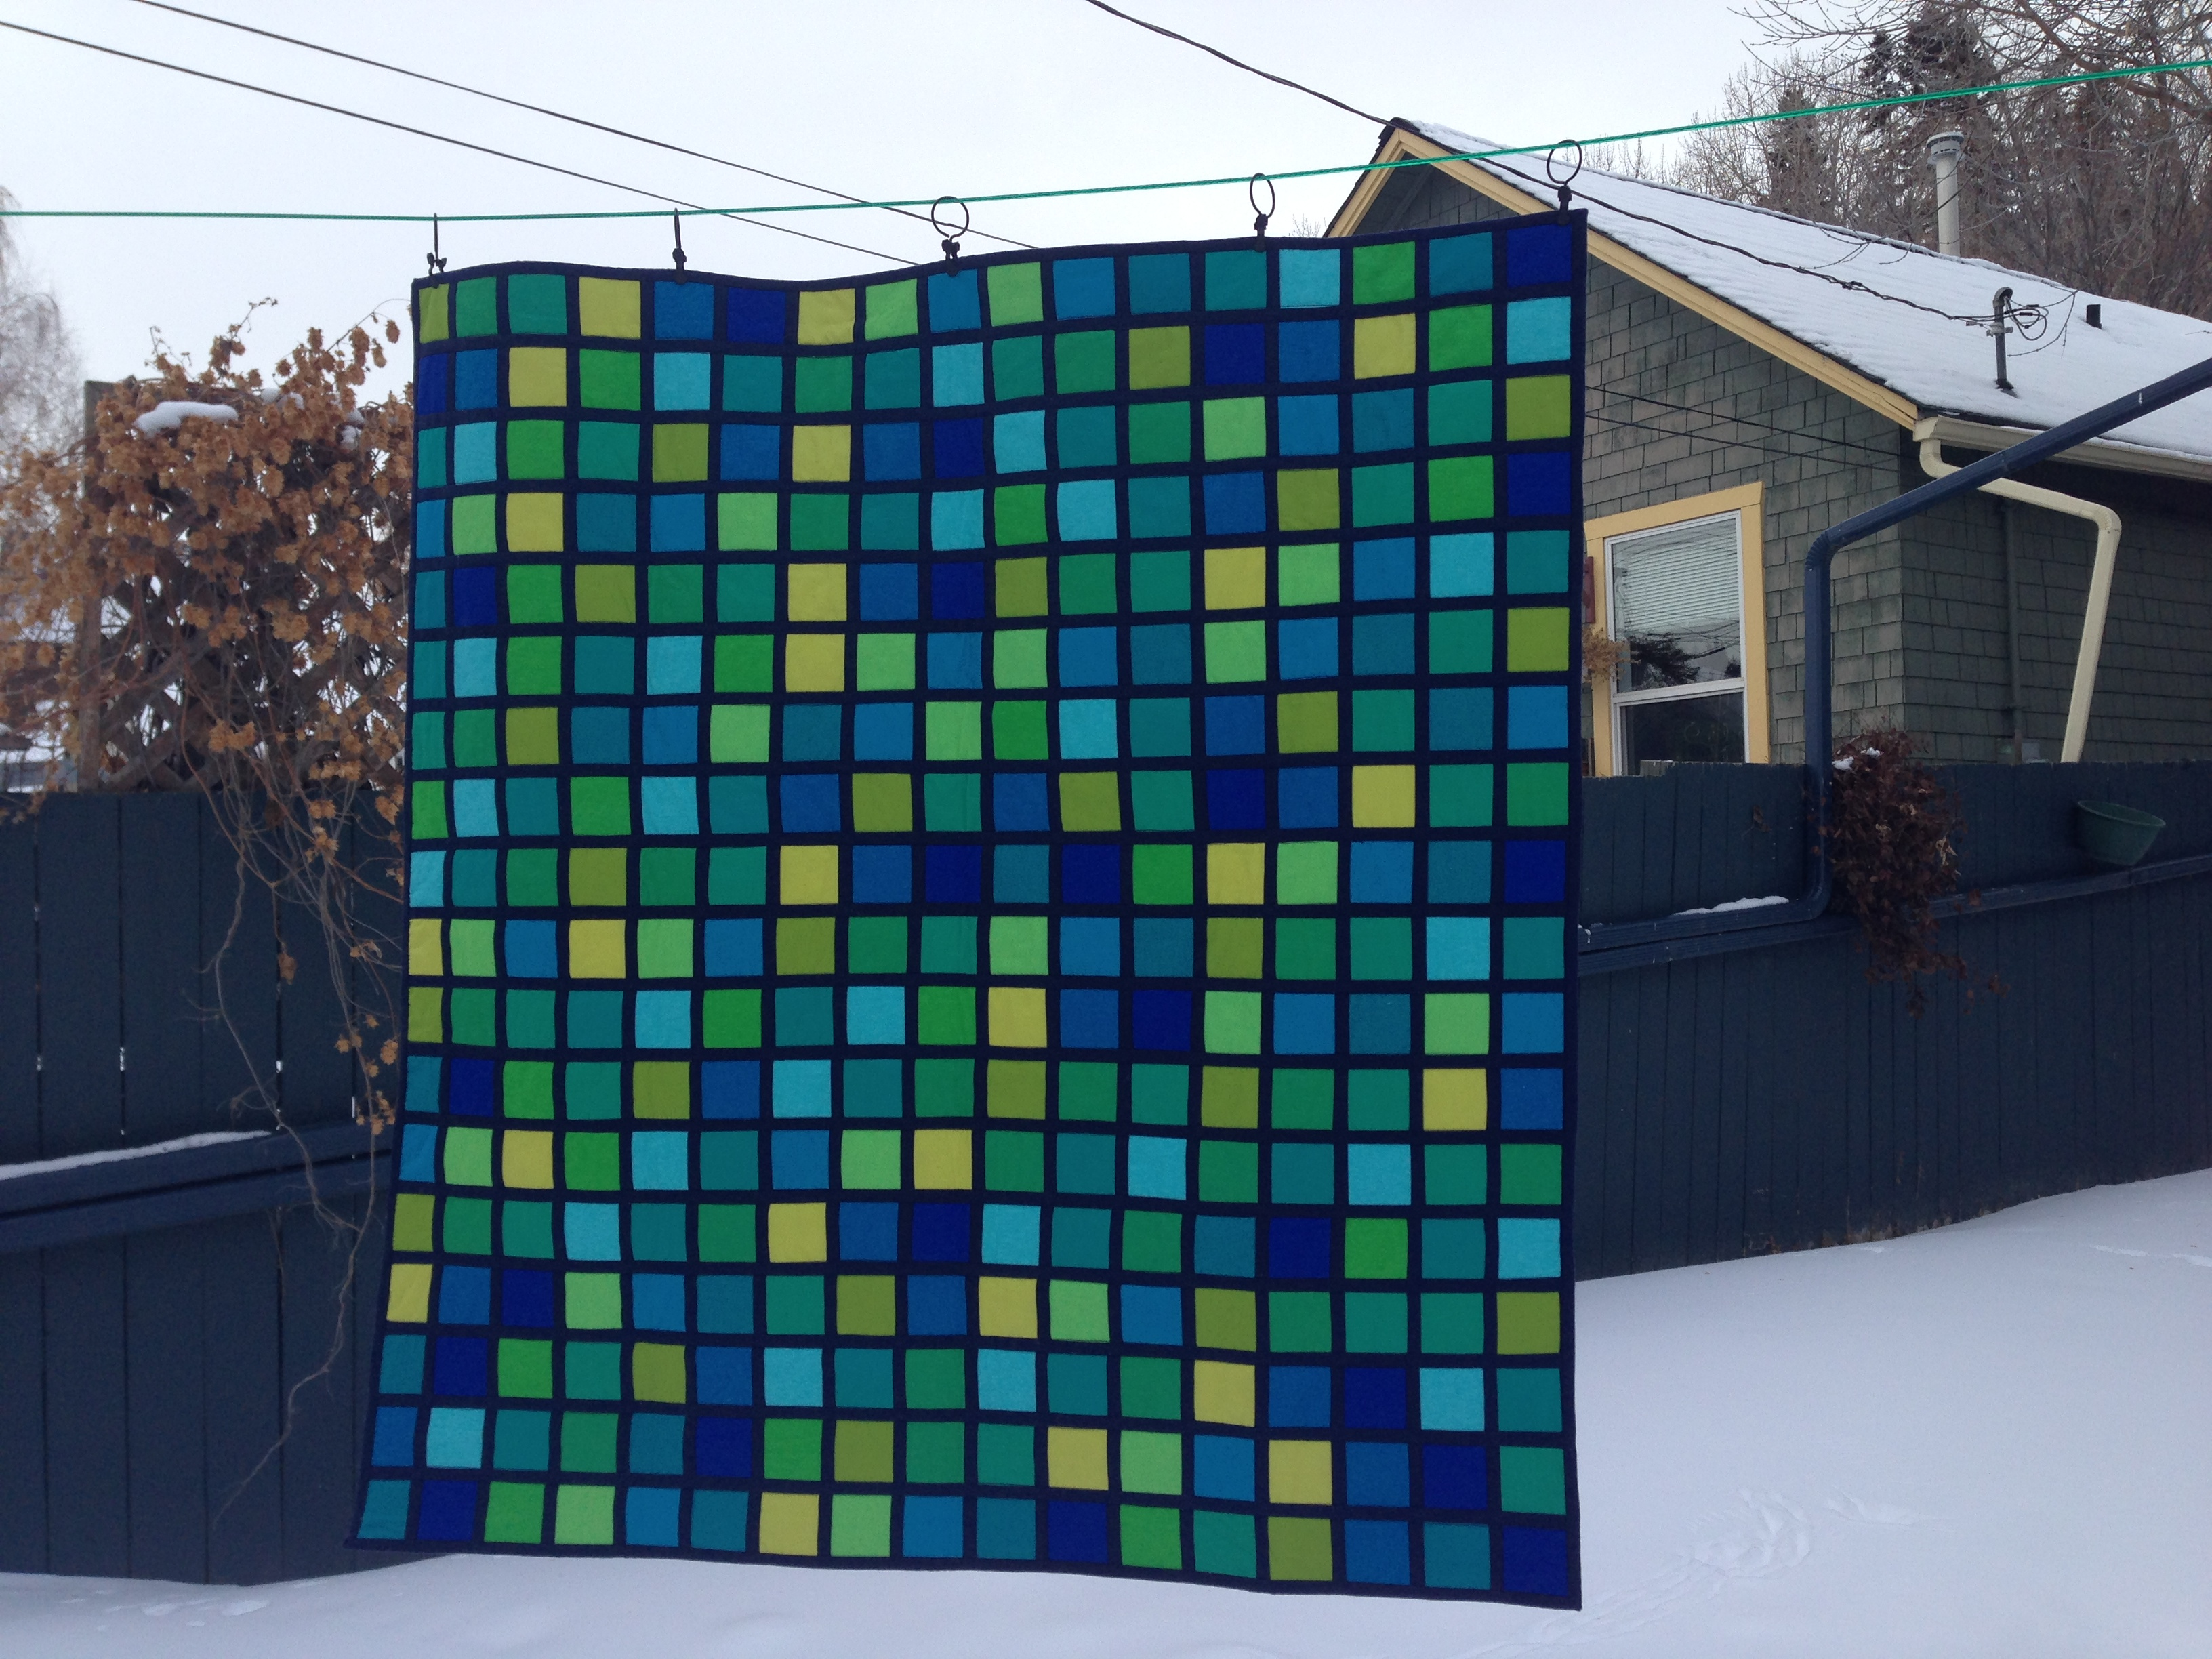 This is not your grandmother's quilt.